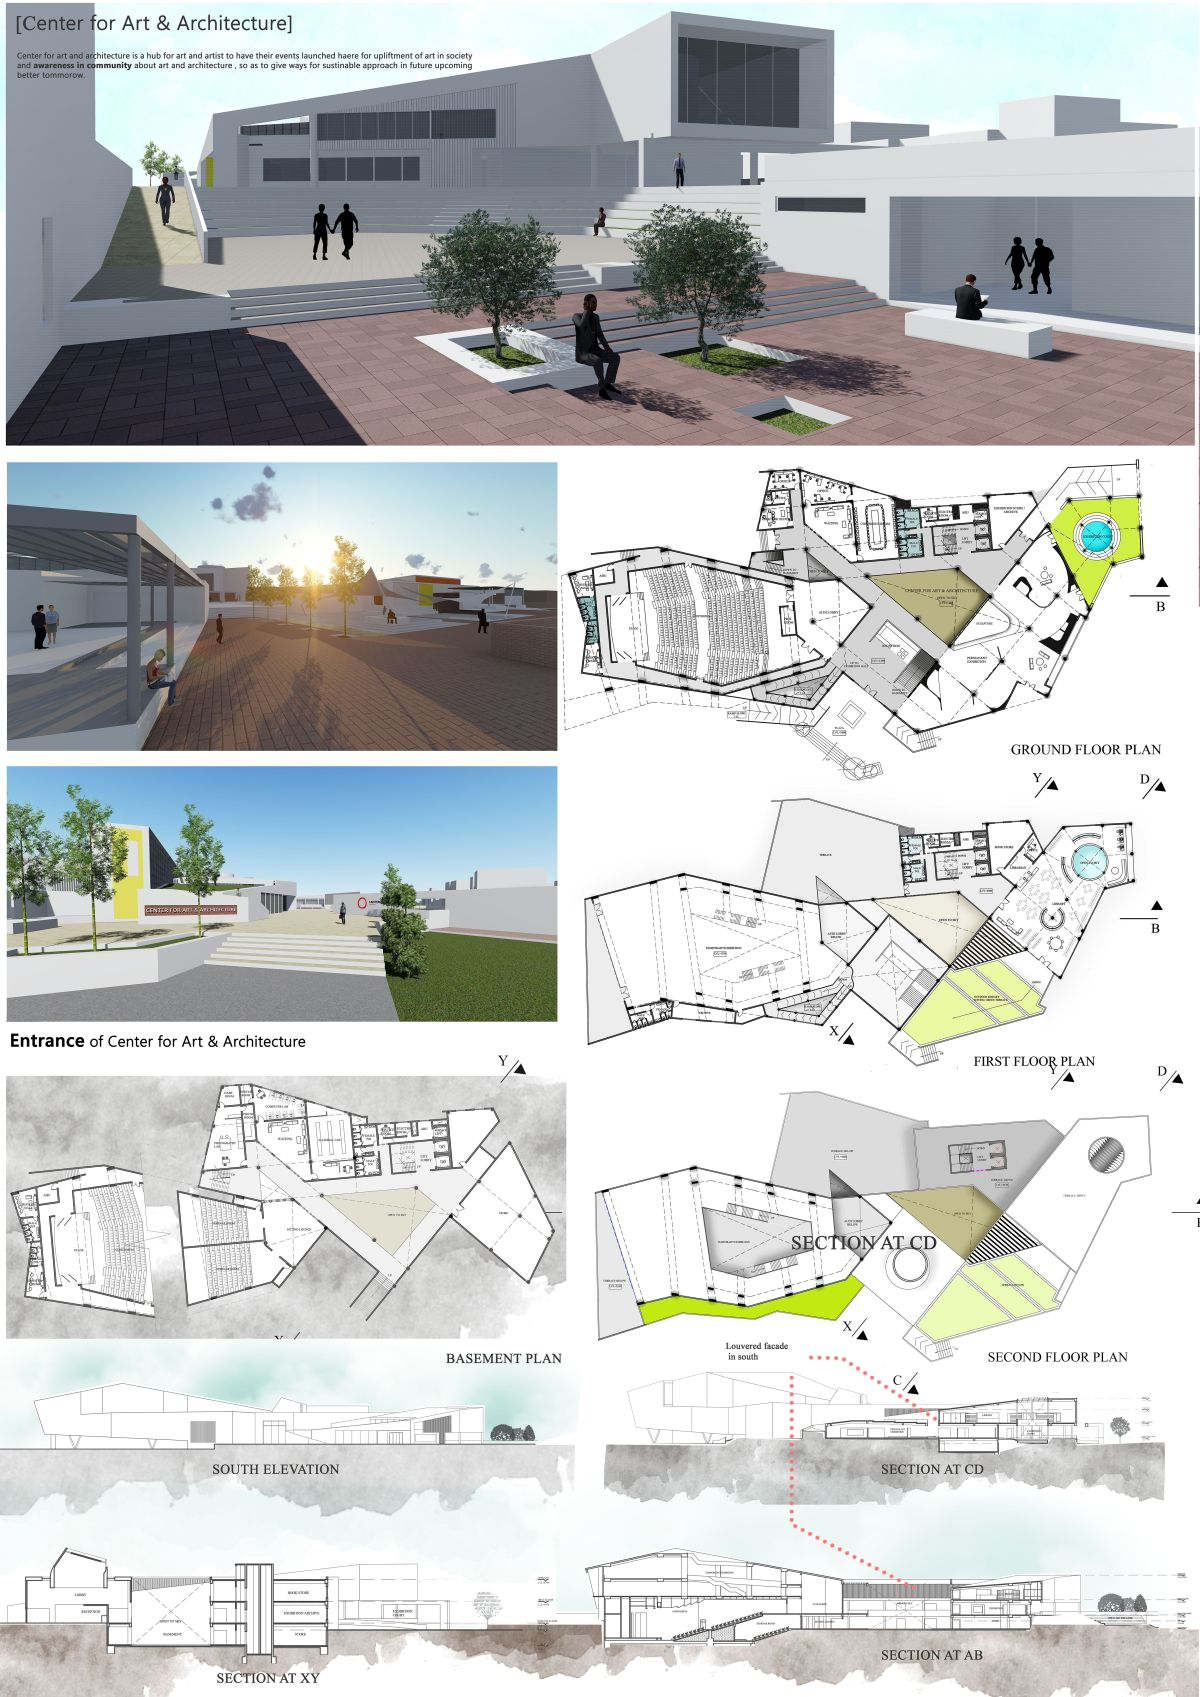 B Arch Thesis - Center for Art & Architecture: Role of an